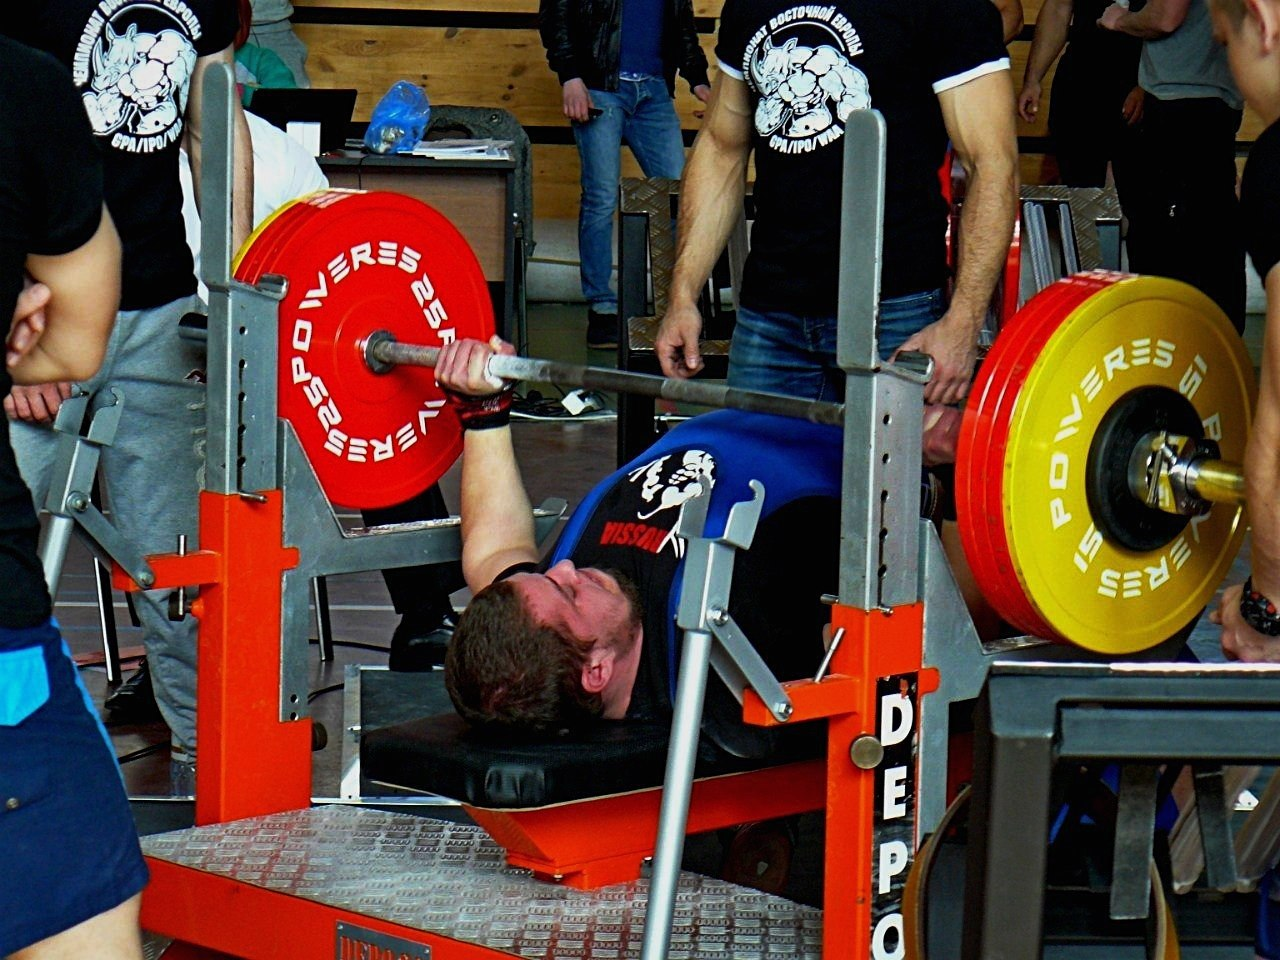 the sport of powerlifting Fortunately, powerlifting is a growing sport, and increasing numbers of people are taking up barbell training those who are more serious about strength development in general, and powerlifting in particular, will often be thinking in terms of safety, math and physiology, logic, programming, and nutrition.